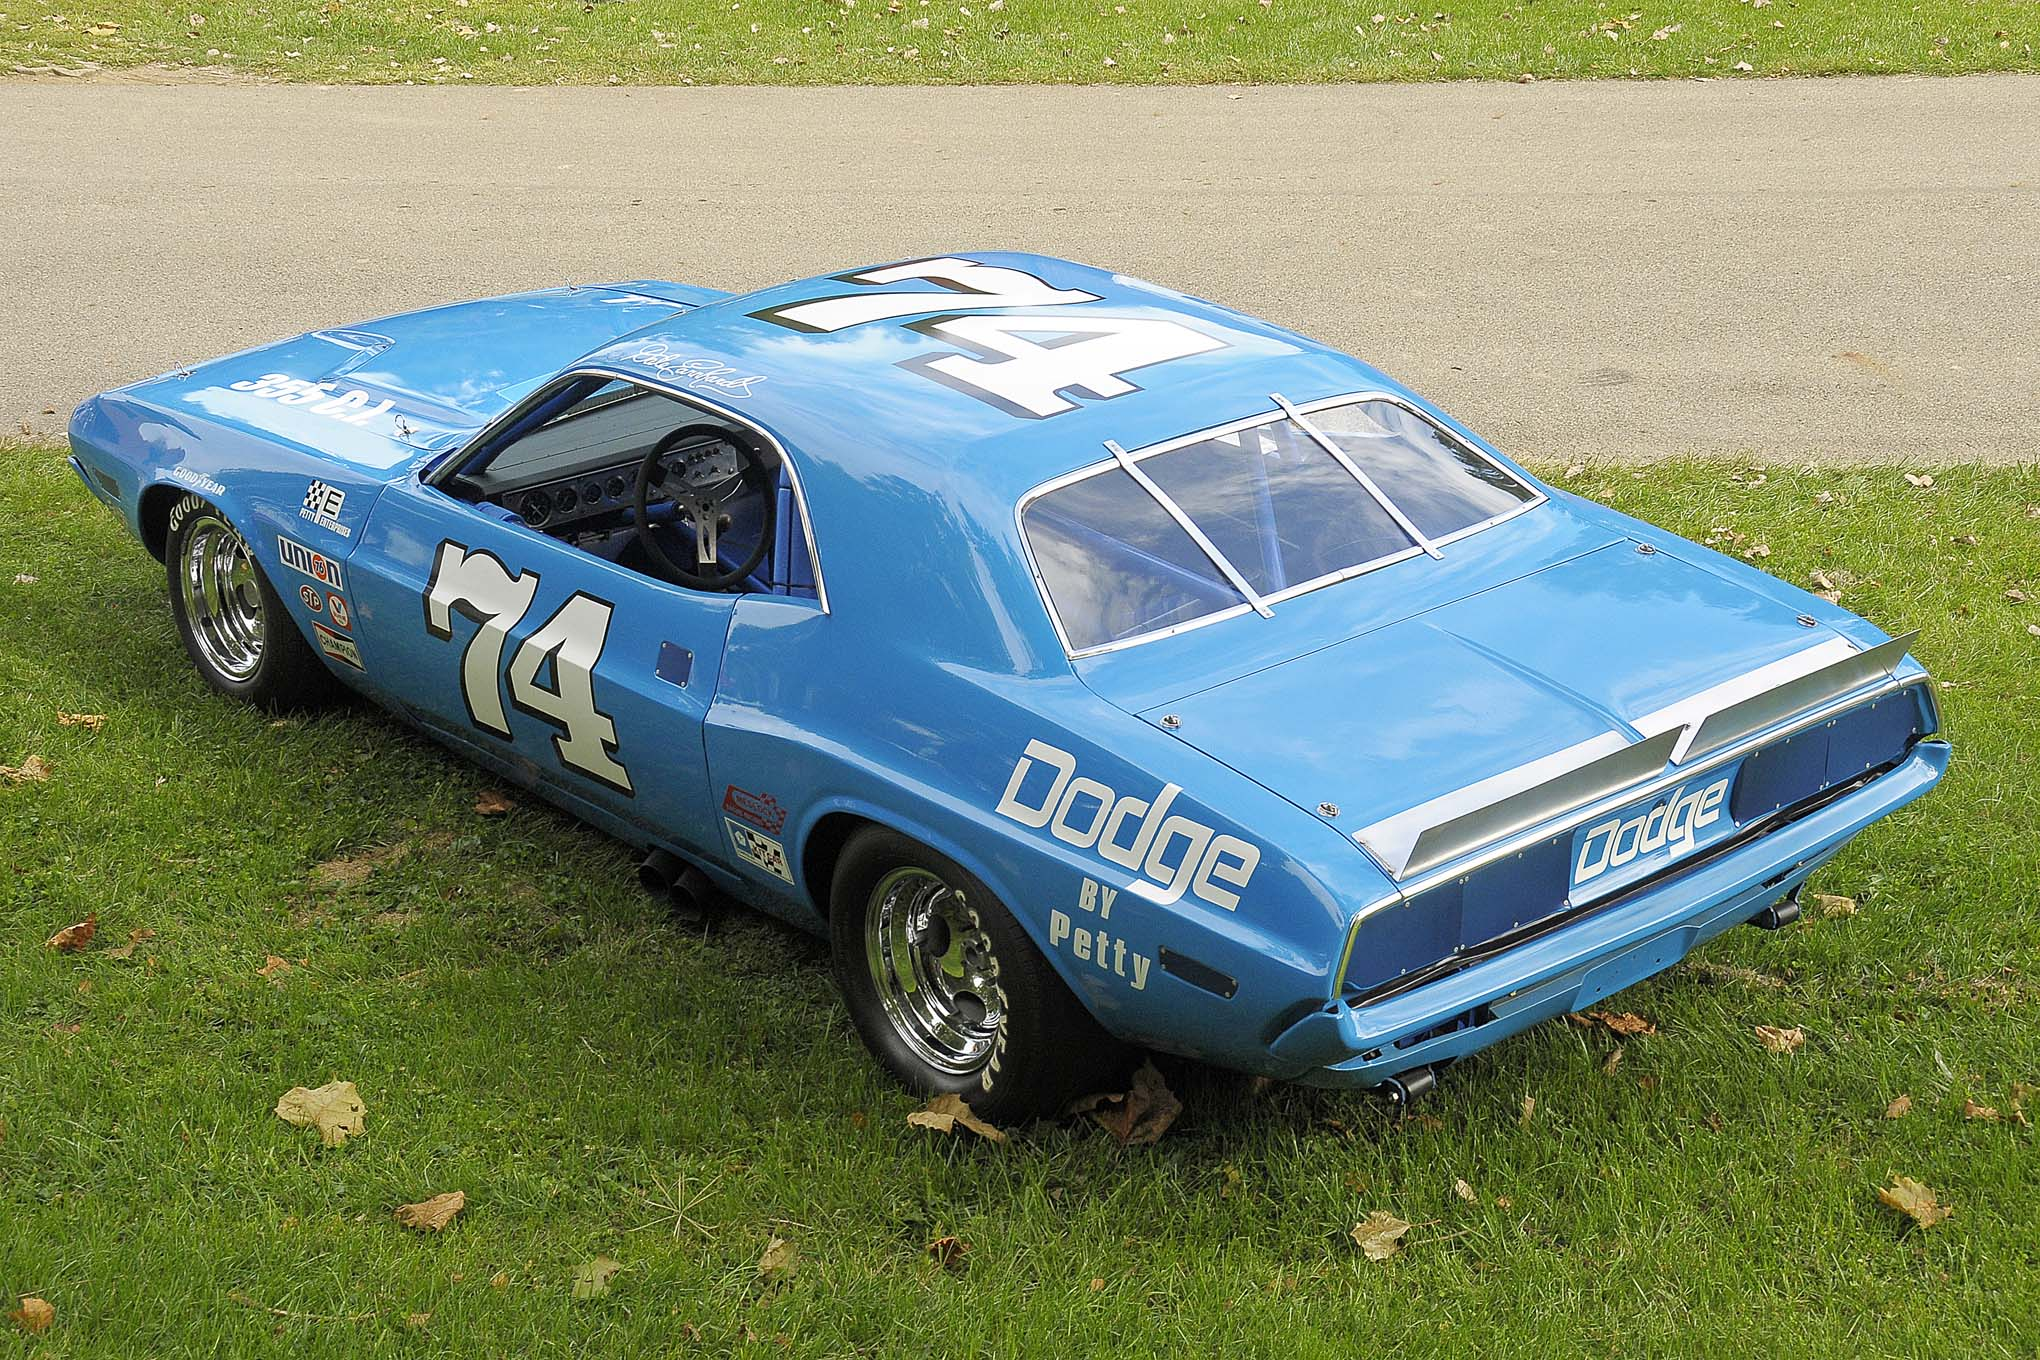 The body was a factory steel 1972 Challenger attached to a kit car frame. The frame was bolstered by X-ing and featured a complete complement of items, making it race ready.